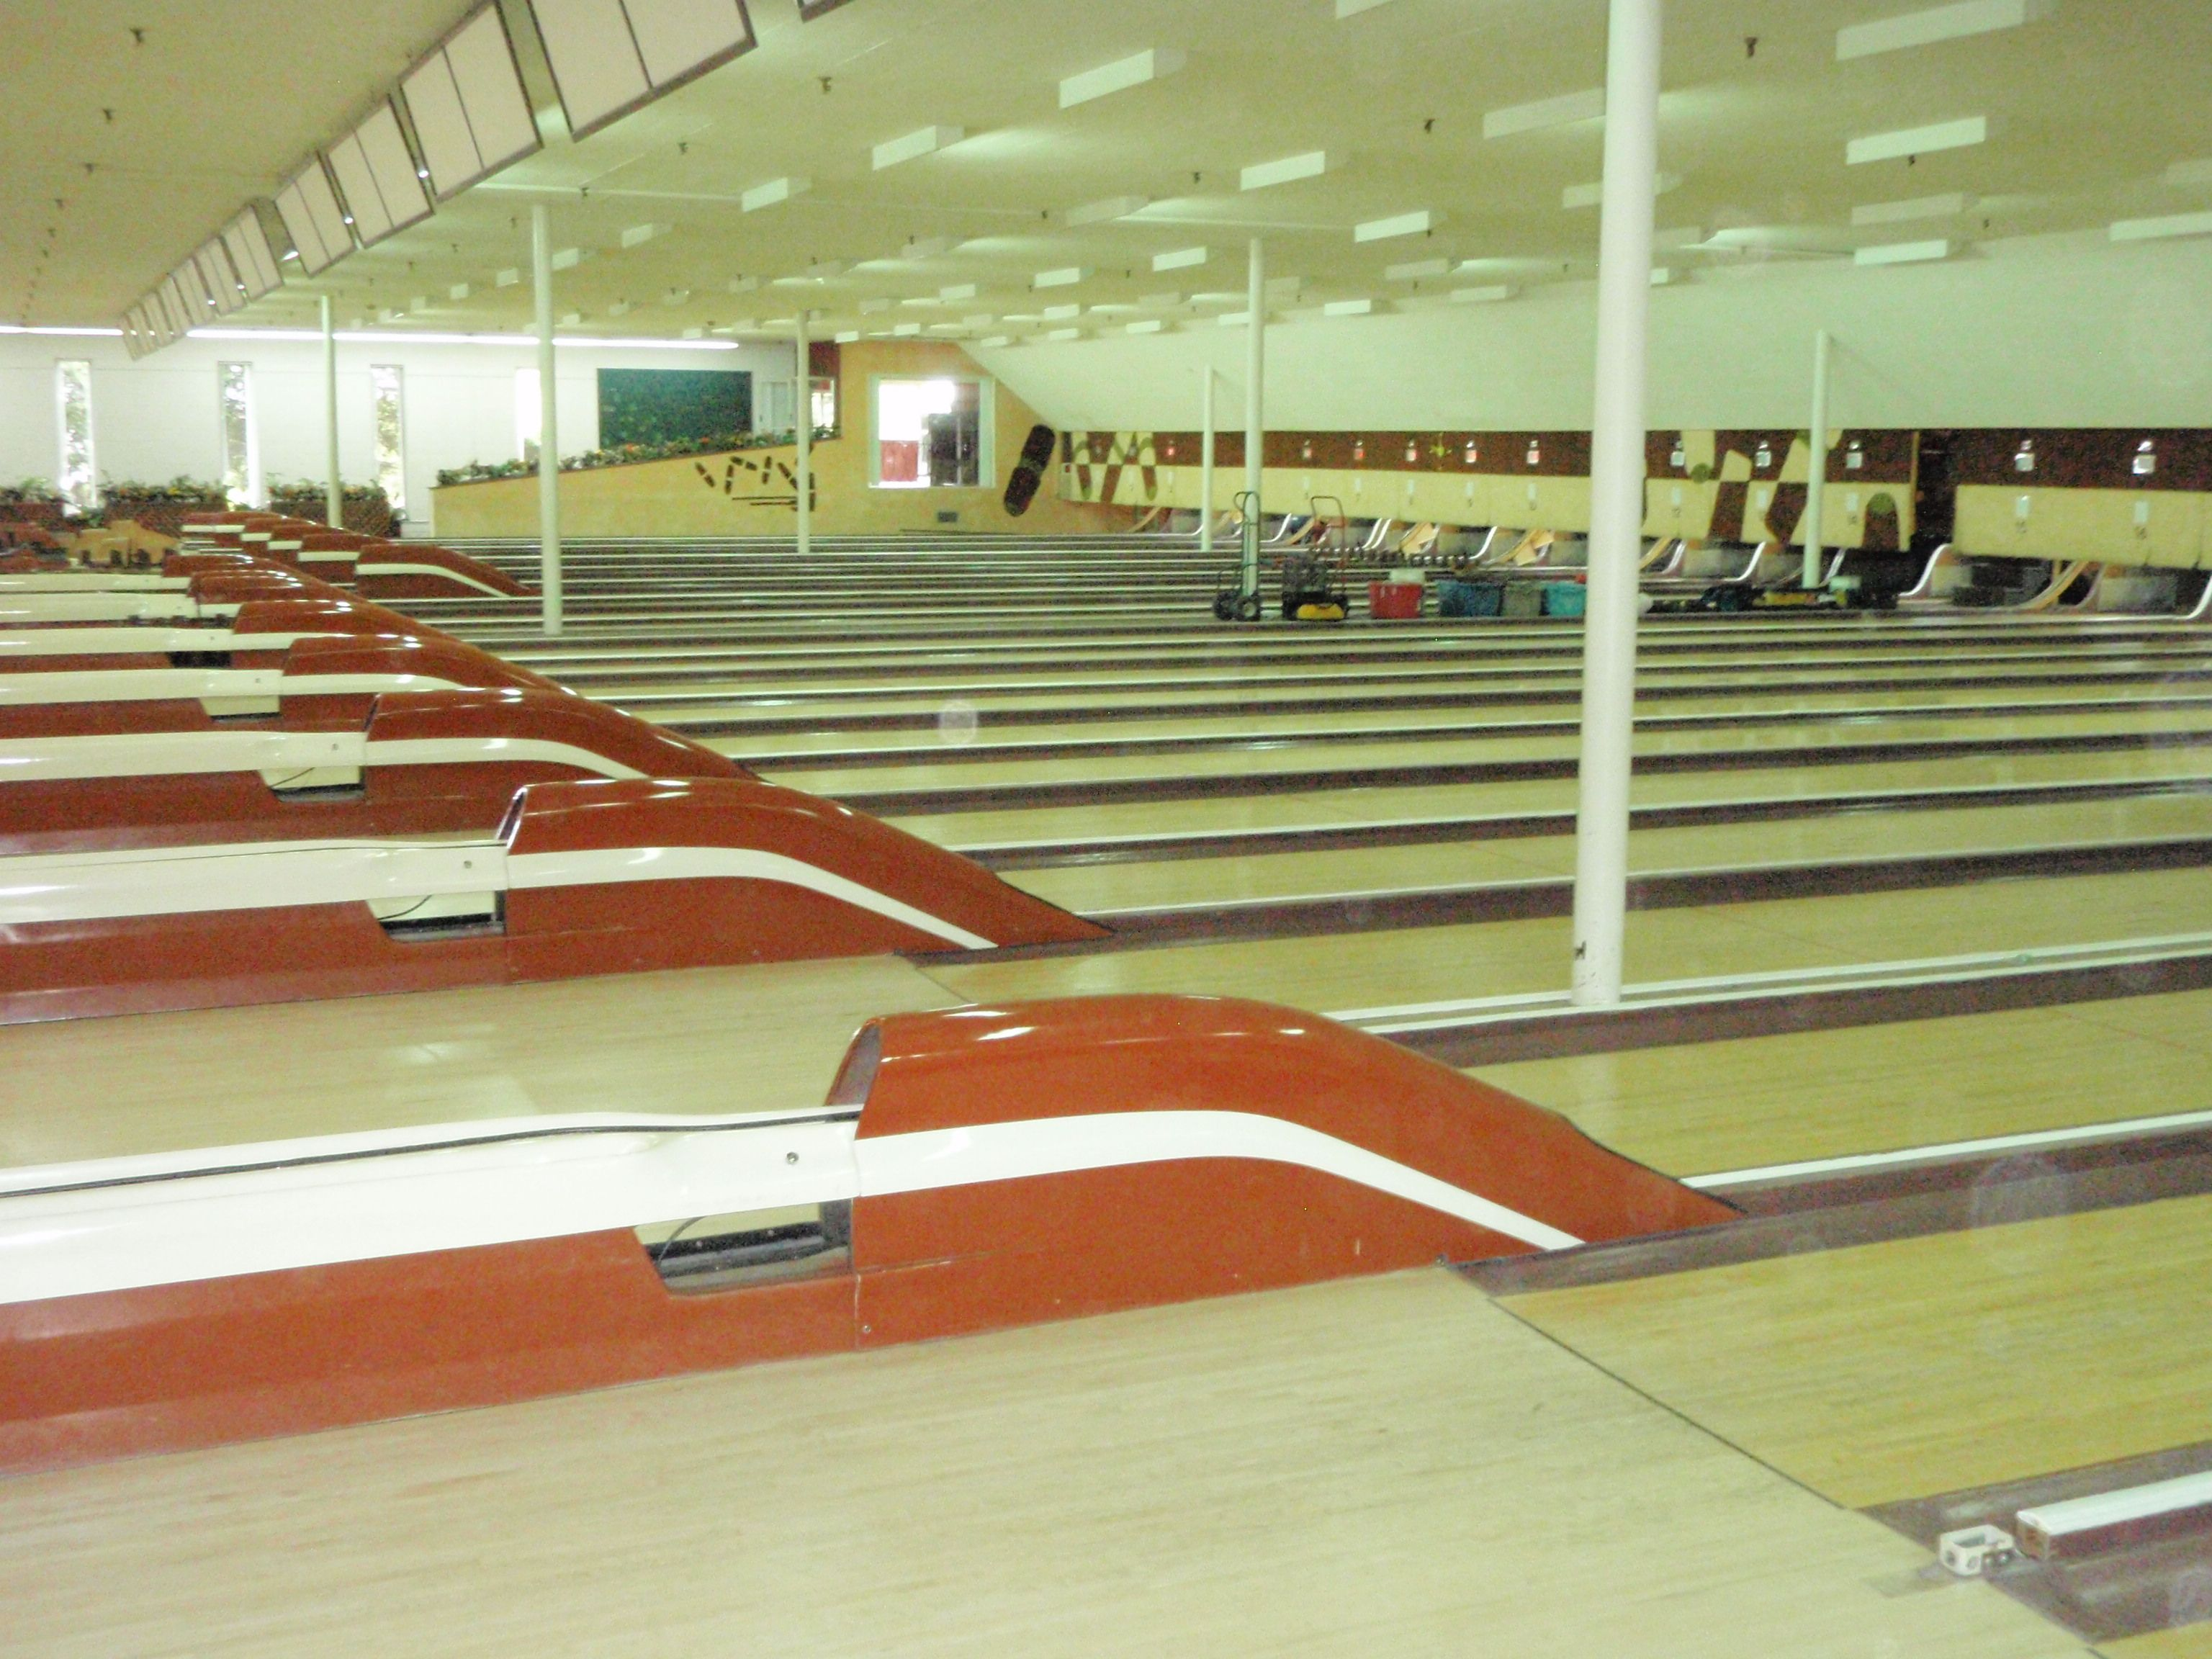 Fairway Bowling Alley In Natick Finds A New Home Bowling Natick New Homes